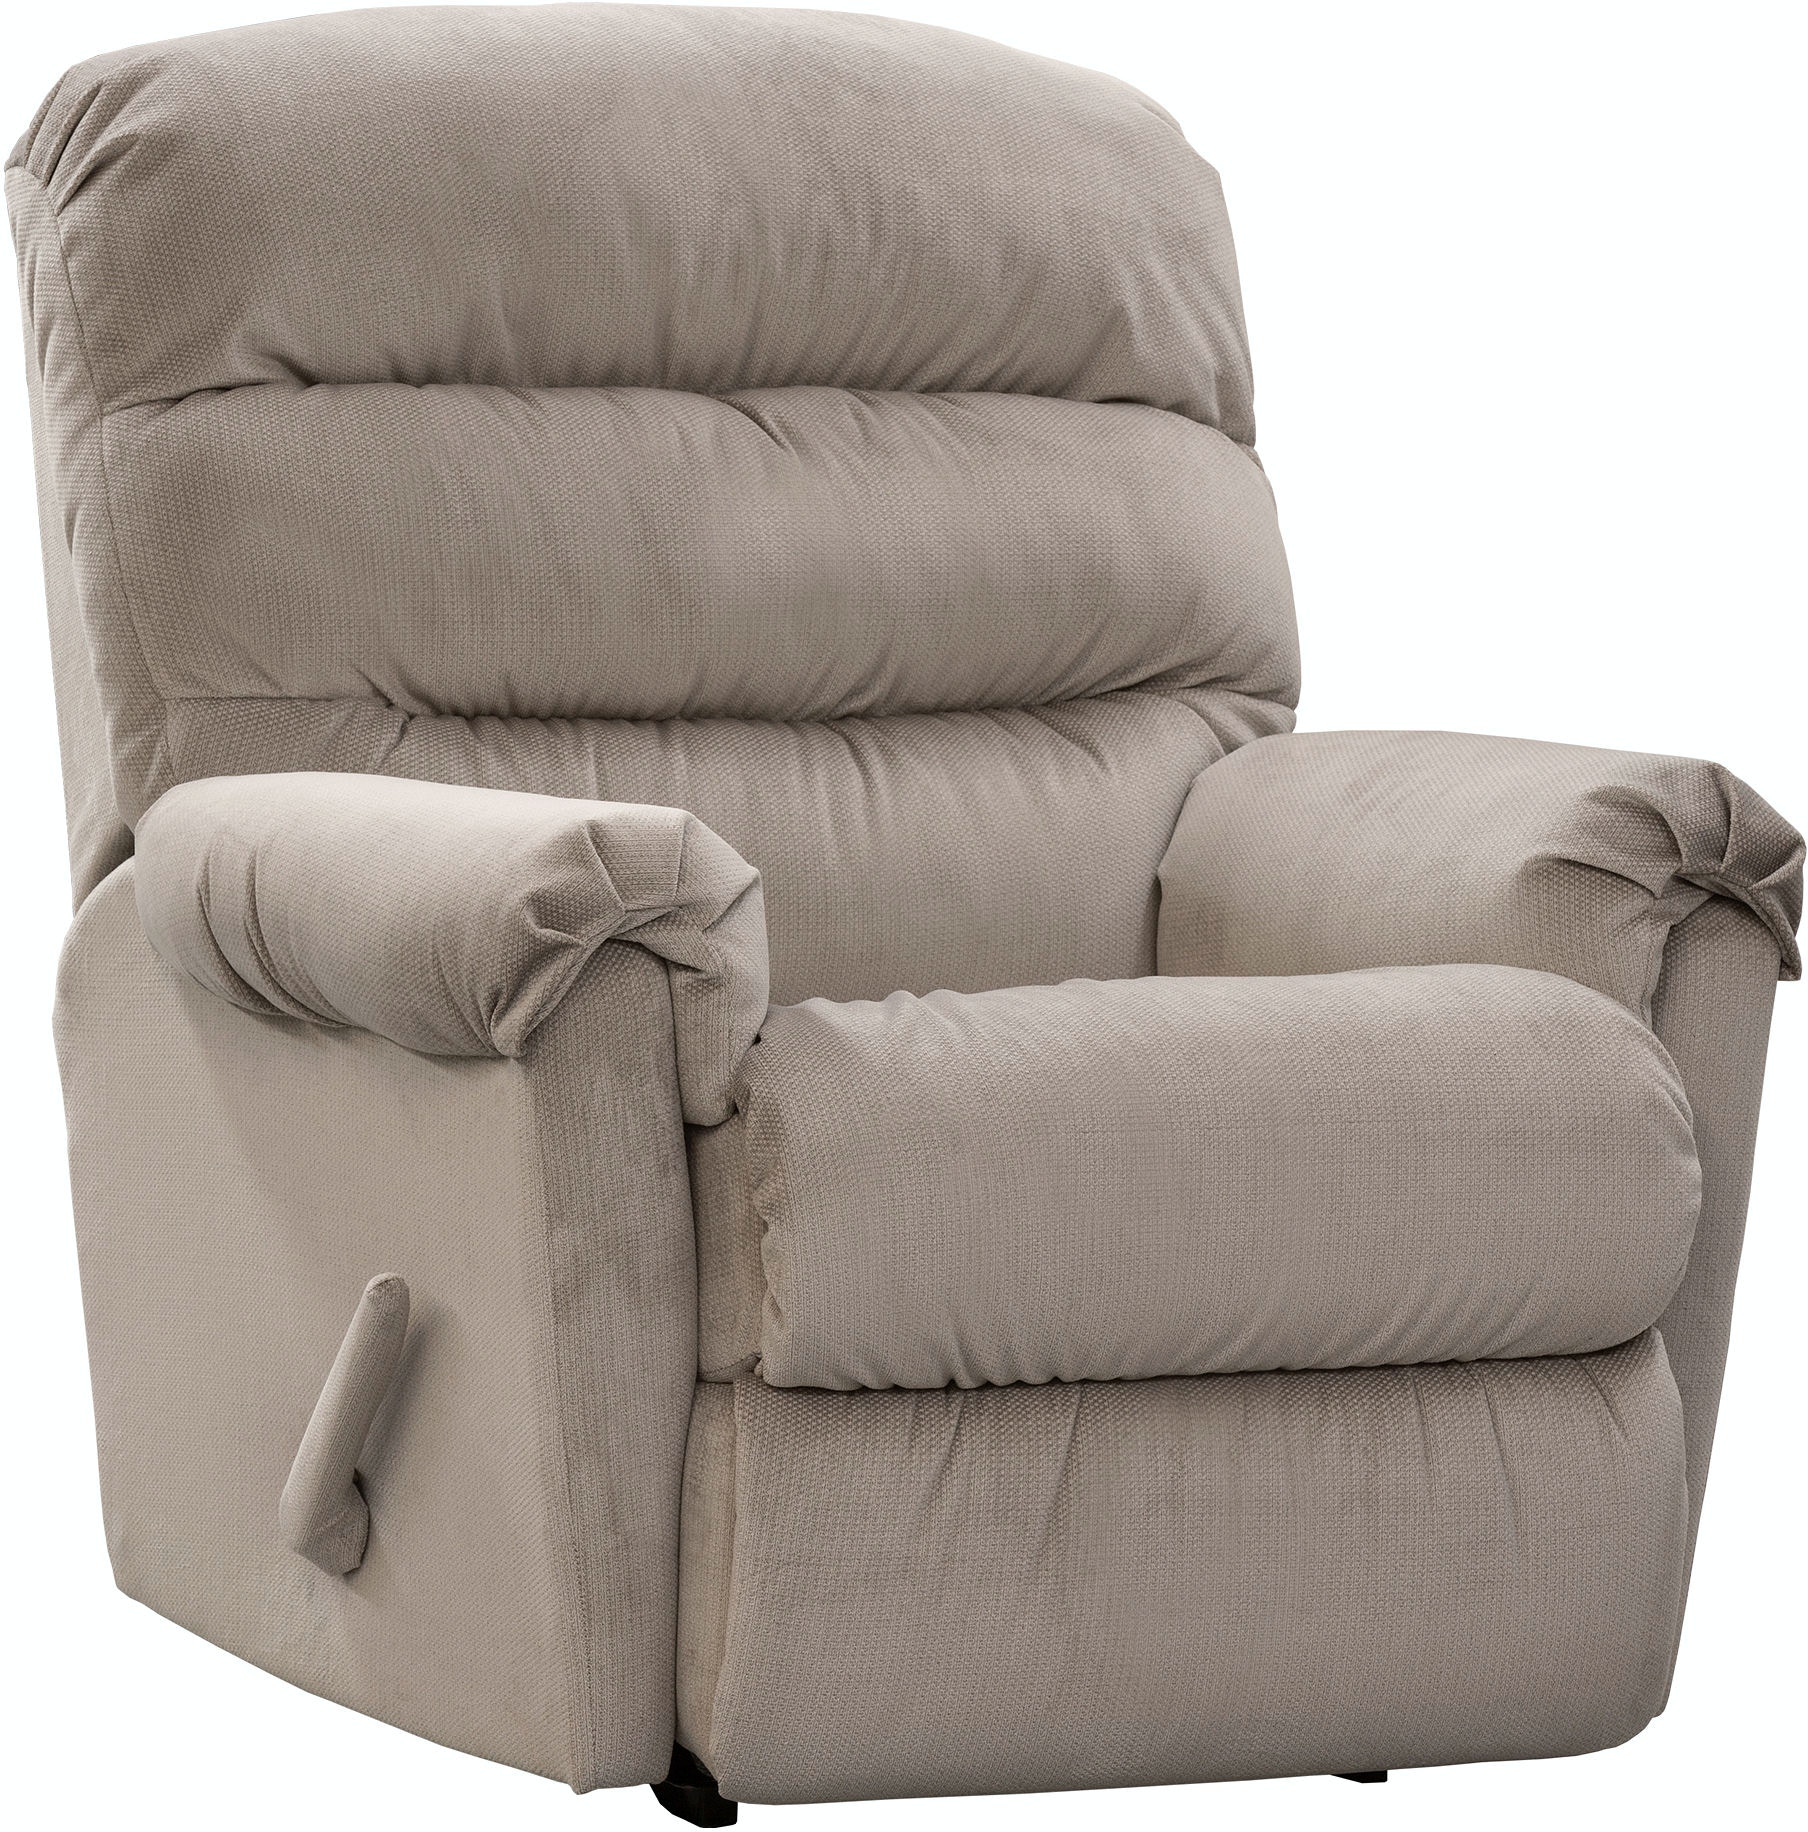 Swivel Rocker Recliner White Leather Swivel Recliner